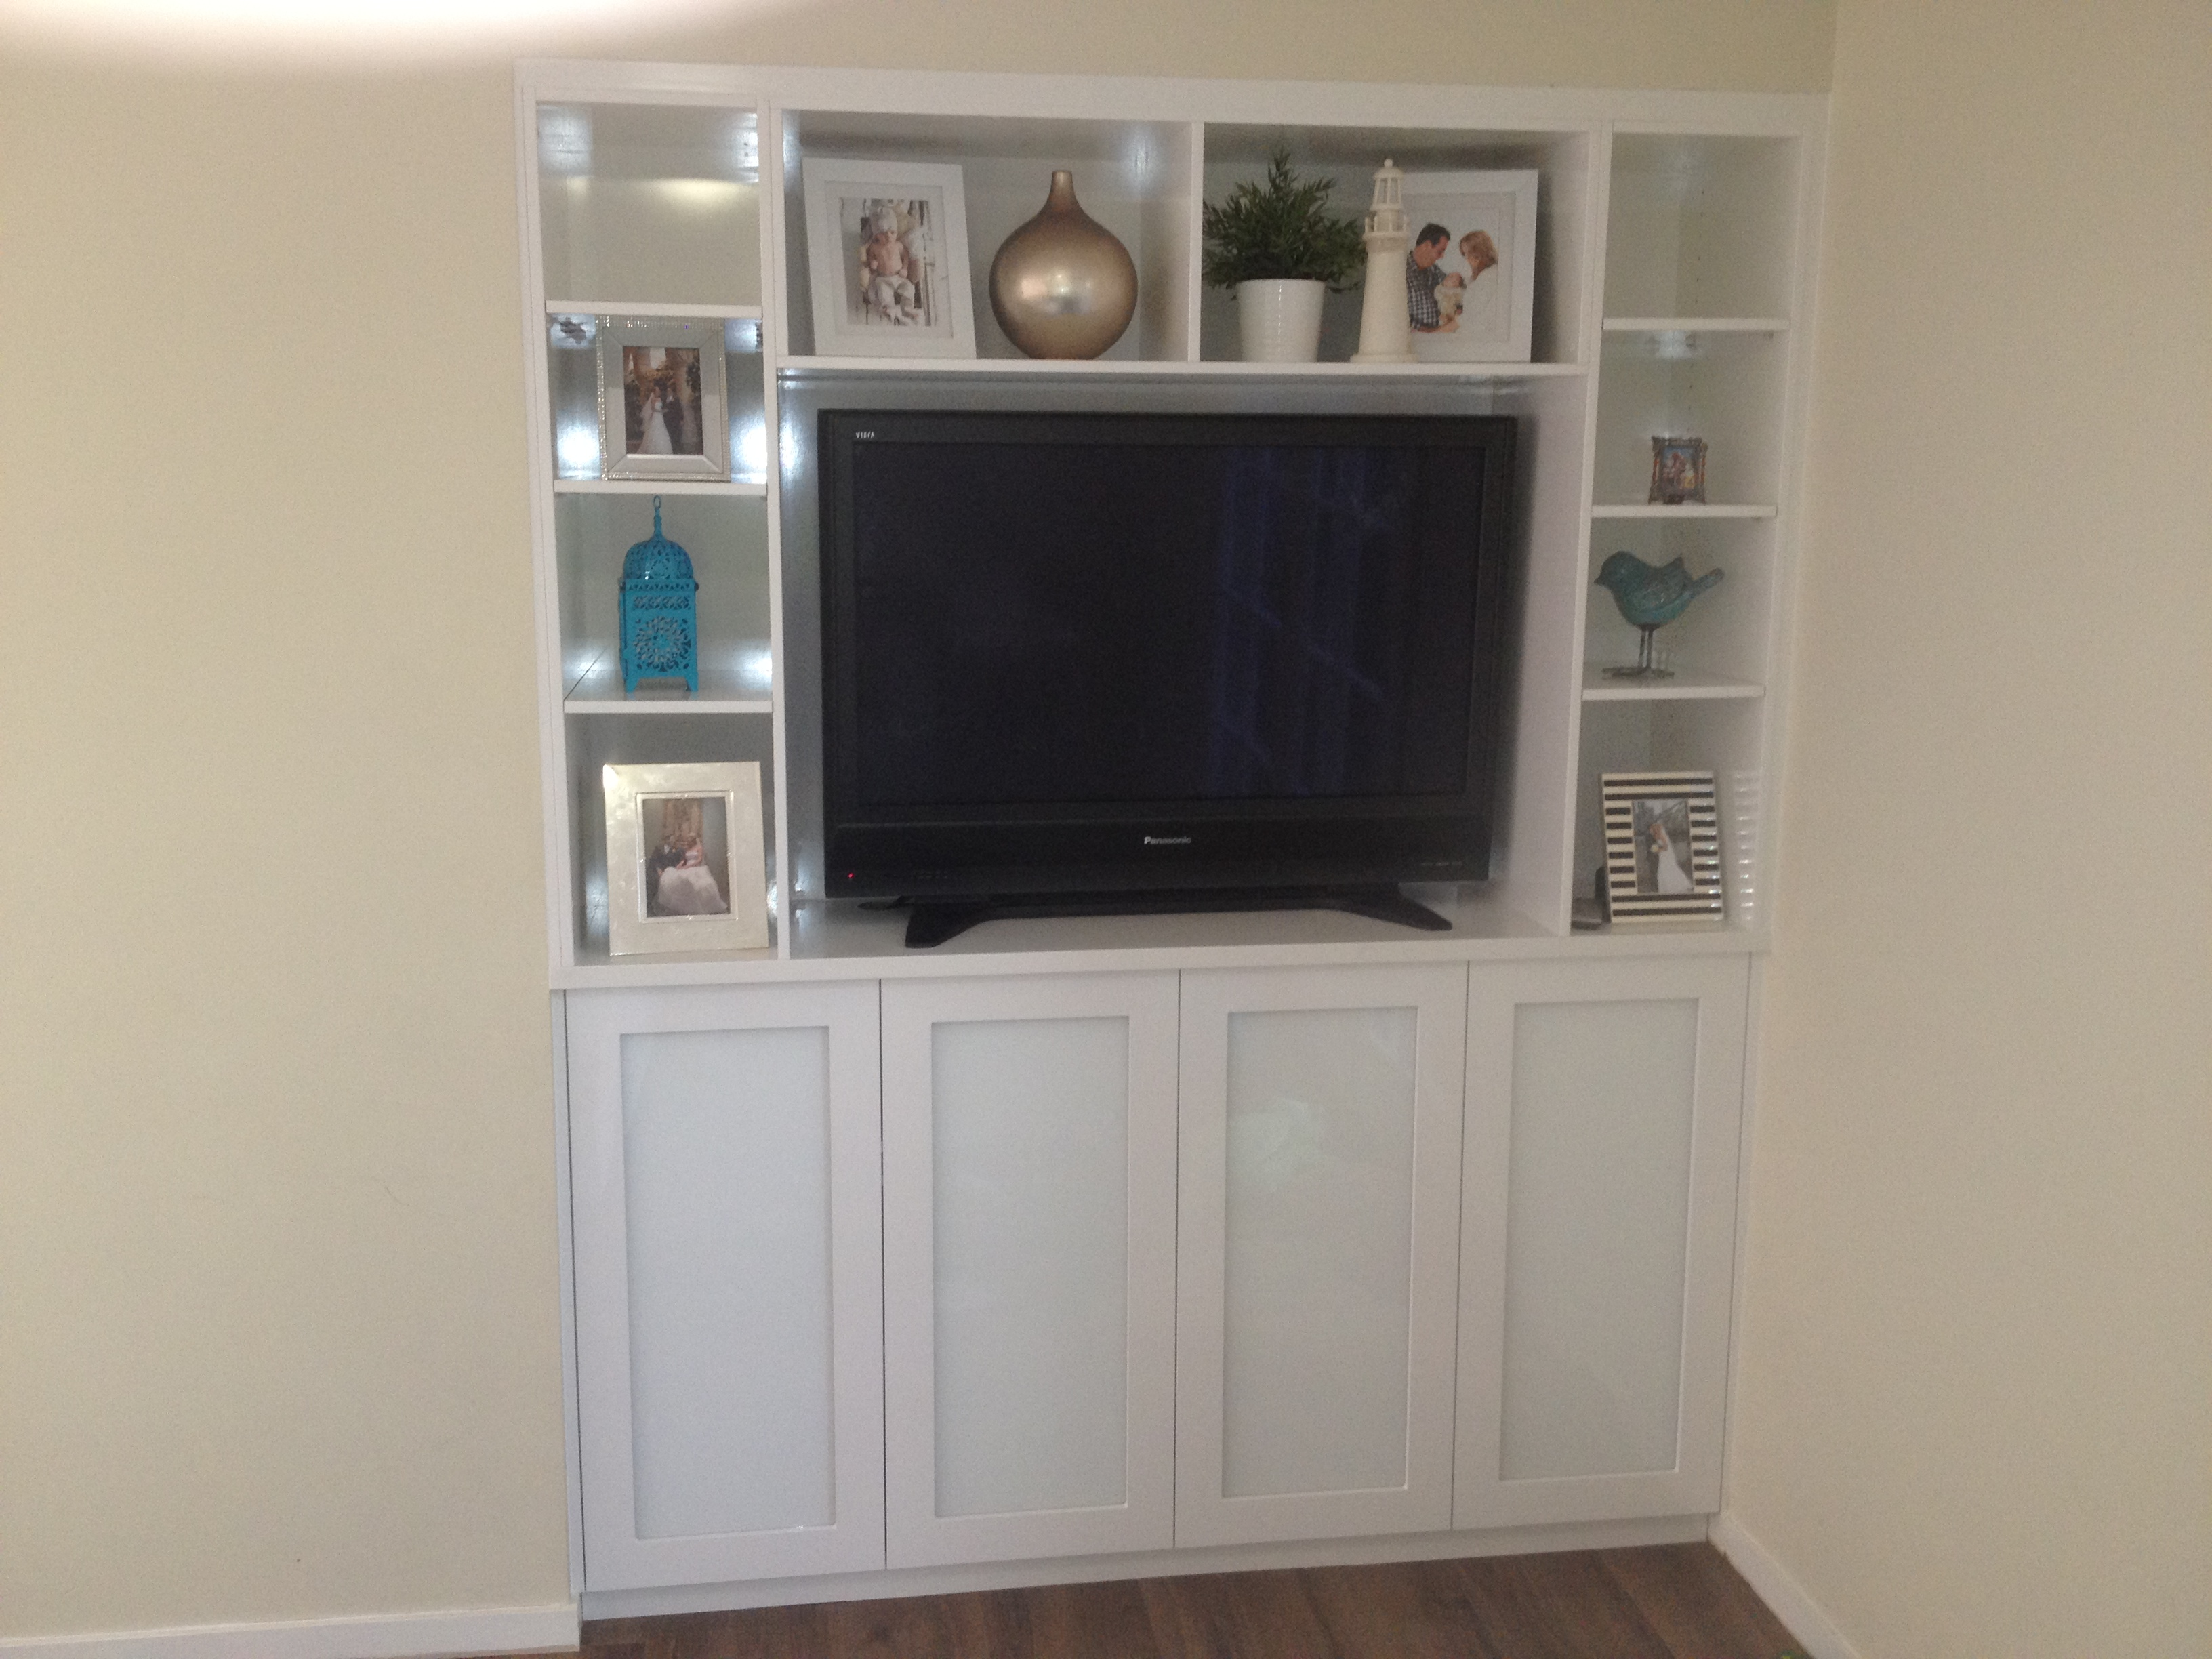 Custom Built In Display Unit With Lights And Glass Inserts In Doors